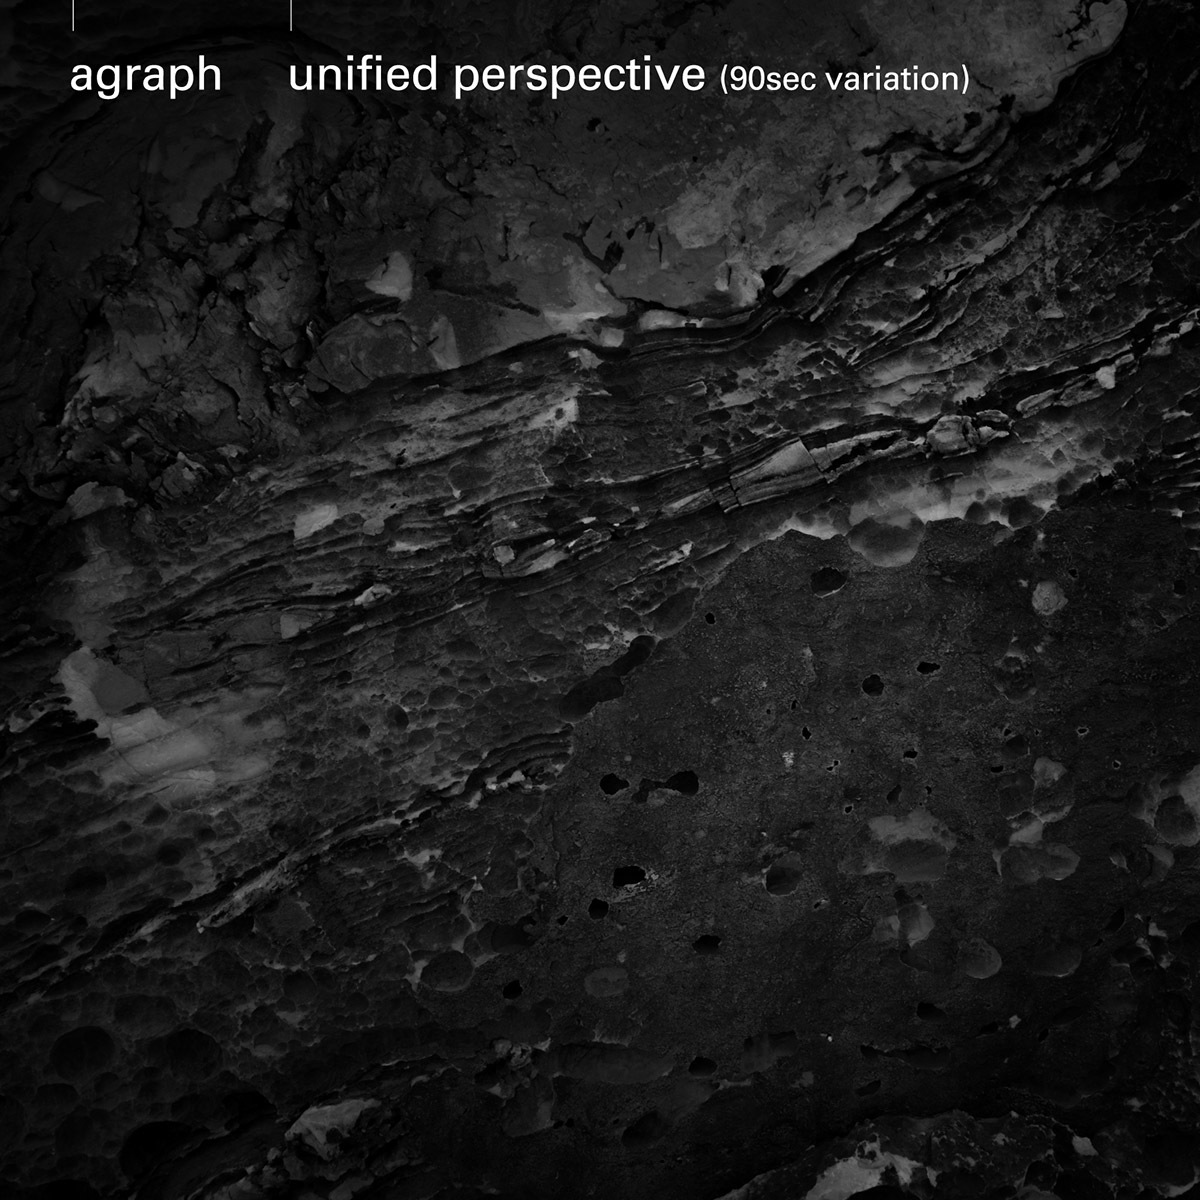 agraph feat. ANI(スチャダラパー)「unified perspective」配信ジャケット